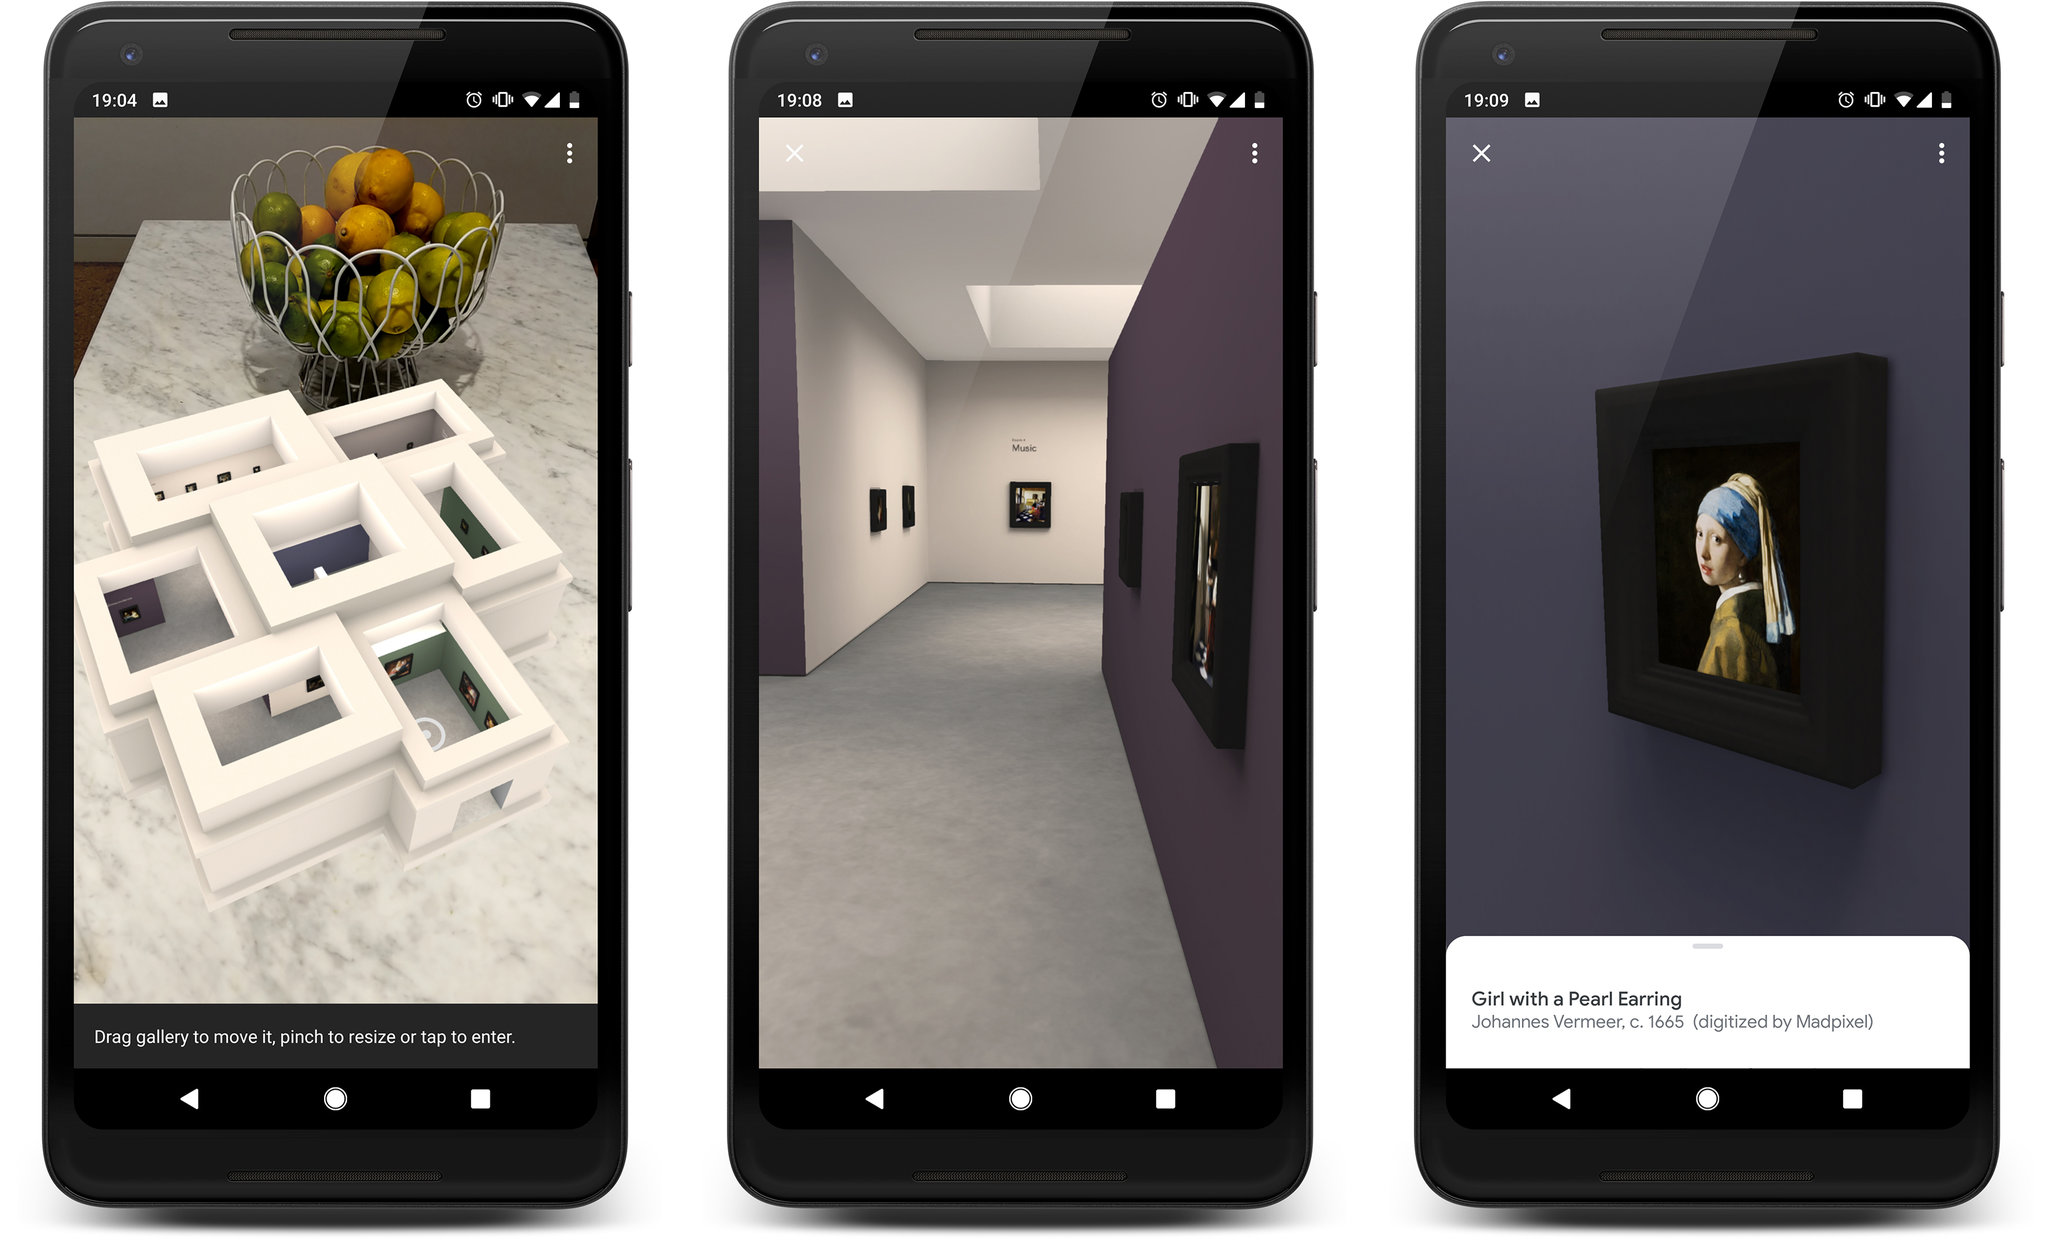 """Meet Vermeer, a new augmented-reality app from the Mauritshuis museum and Google, is a virtual museum containing images of all authenticated Vermeer paintings. From left, an overhead view of the galleries in miniature; a look inside the space; and """"Girl With a Pearl Earring"""" on the wall.CreditCreditvia Mauritshuis/Google Arts & Culture"""